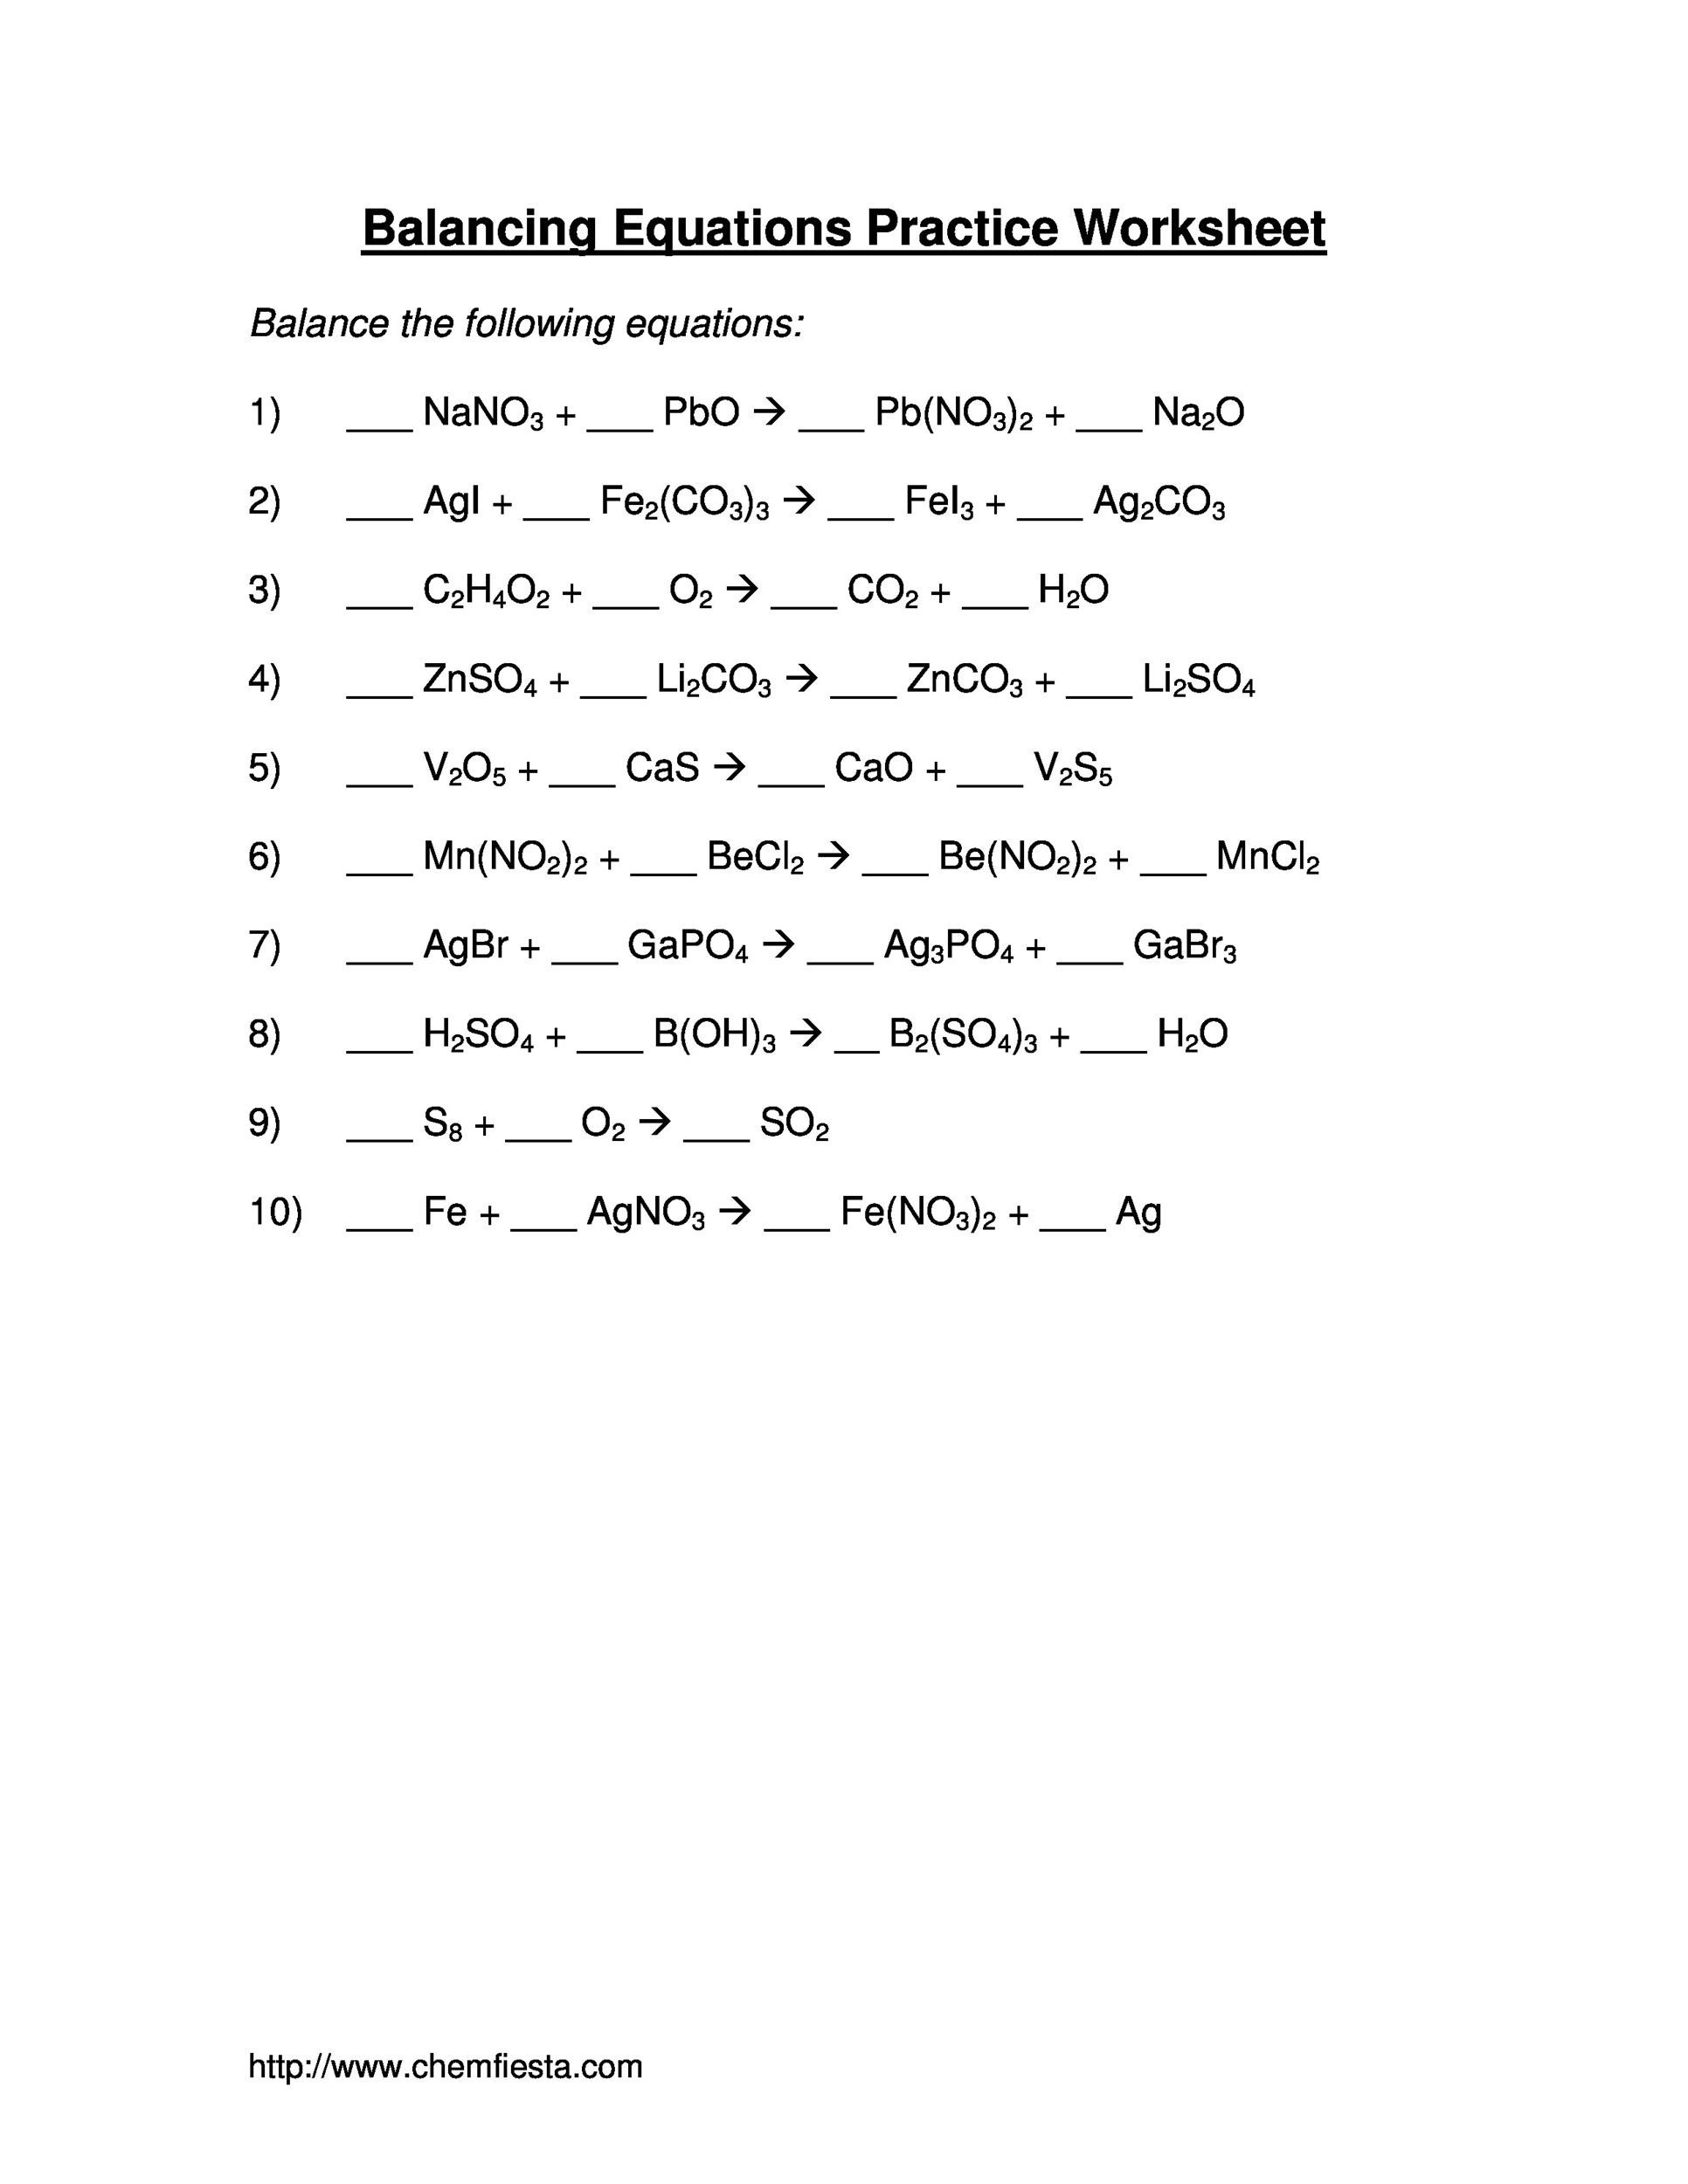 Balancing Equations Worksheet Answer Key Chemistry About Com – Balancing Chemical Equations Worksheet 2